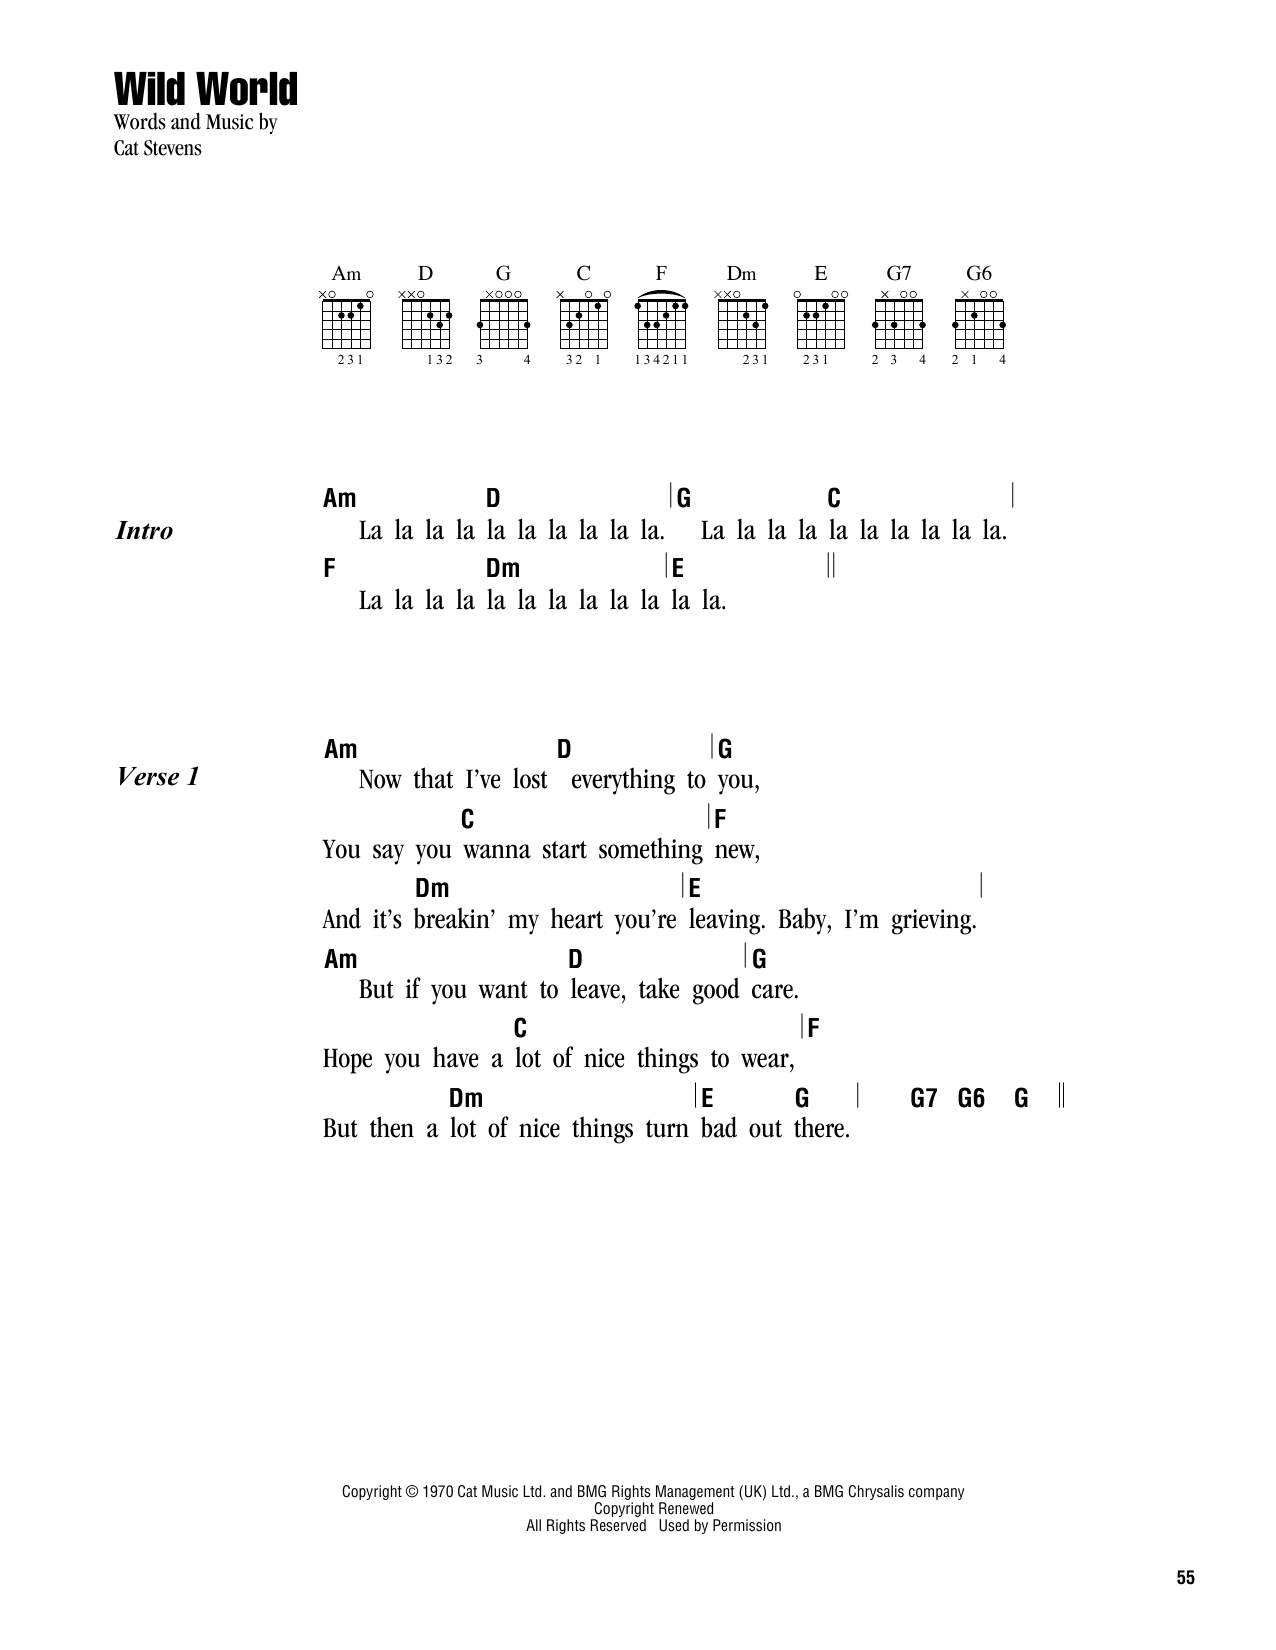 Wild World Sheet Music Cat Stevens Lyrics Chords